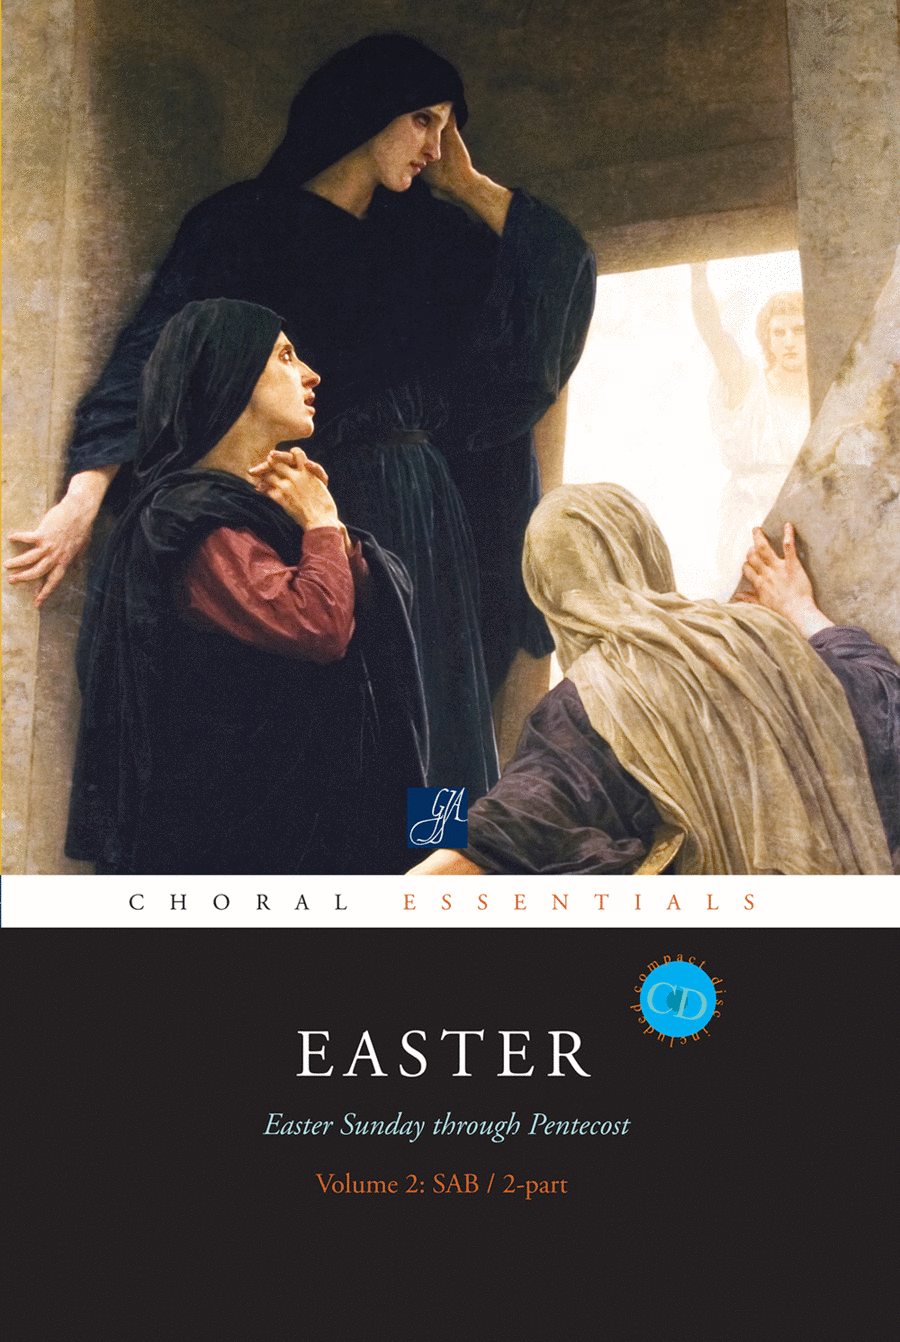 Choral Essentials: Easter - Volume 2 - Music Collection with CD